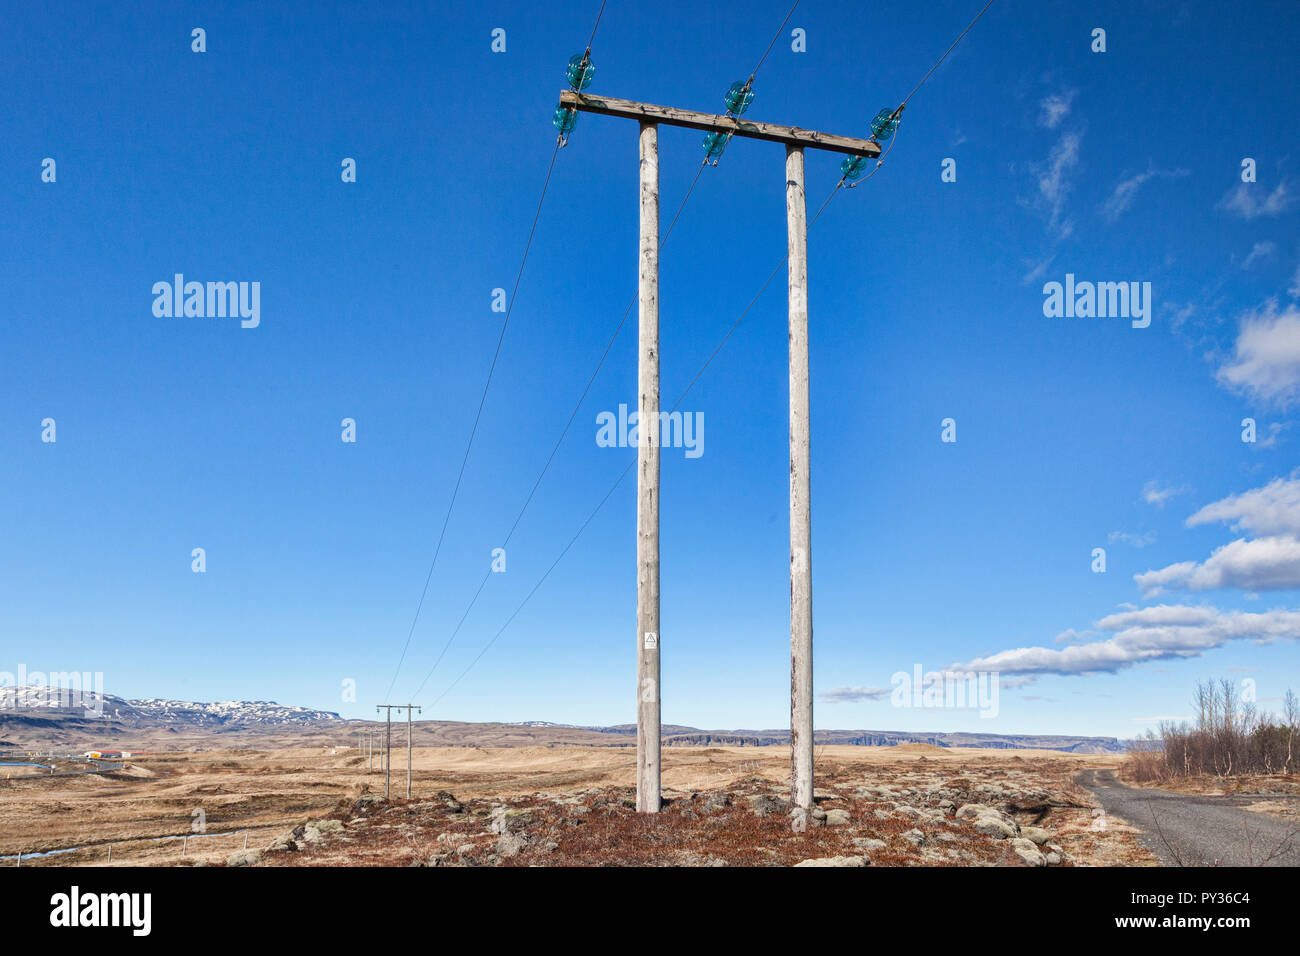 Pylons on the south coast of Iceland. - Stock Image